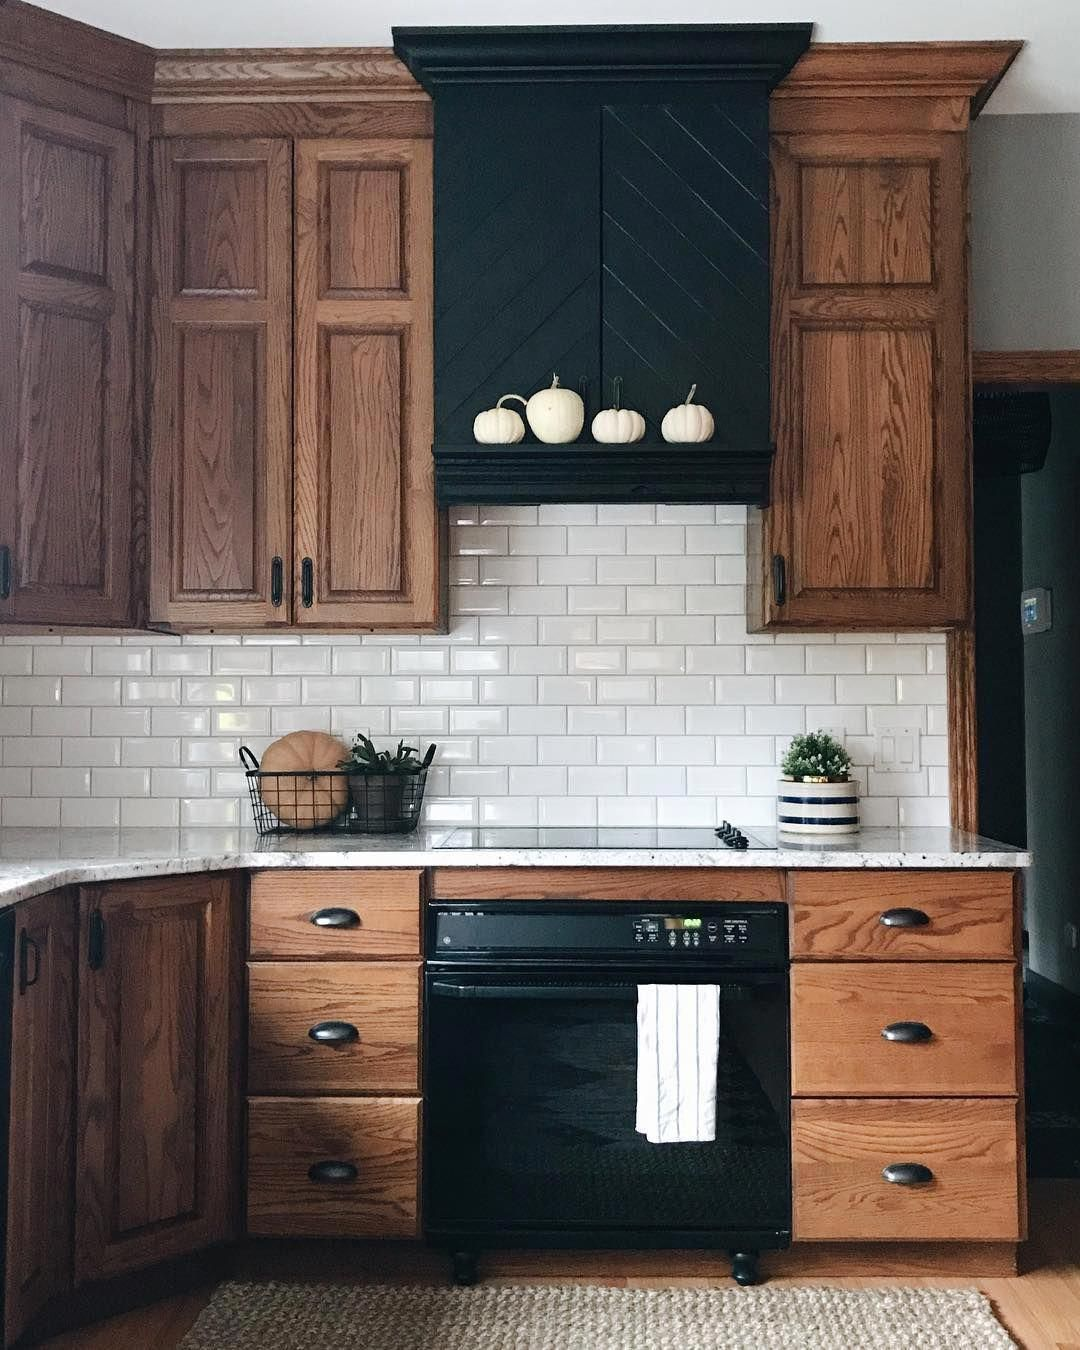 Pin By Brooke Wagner On Bedroom In 2020 Farmhouse Kitchen Decor Modern Farmhouse Kitchens New Kitchen Cabinets